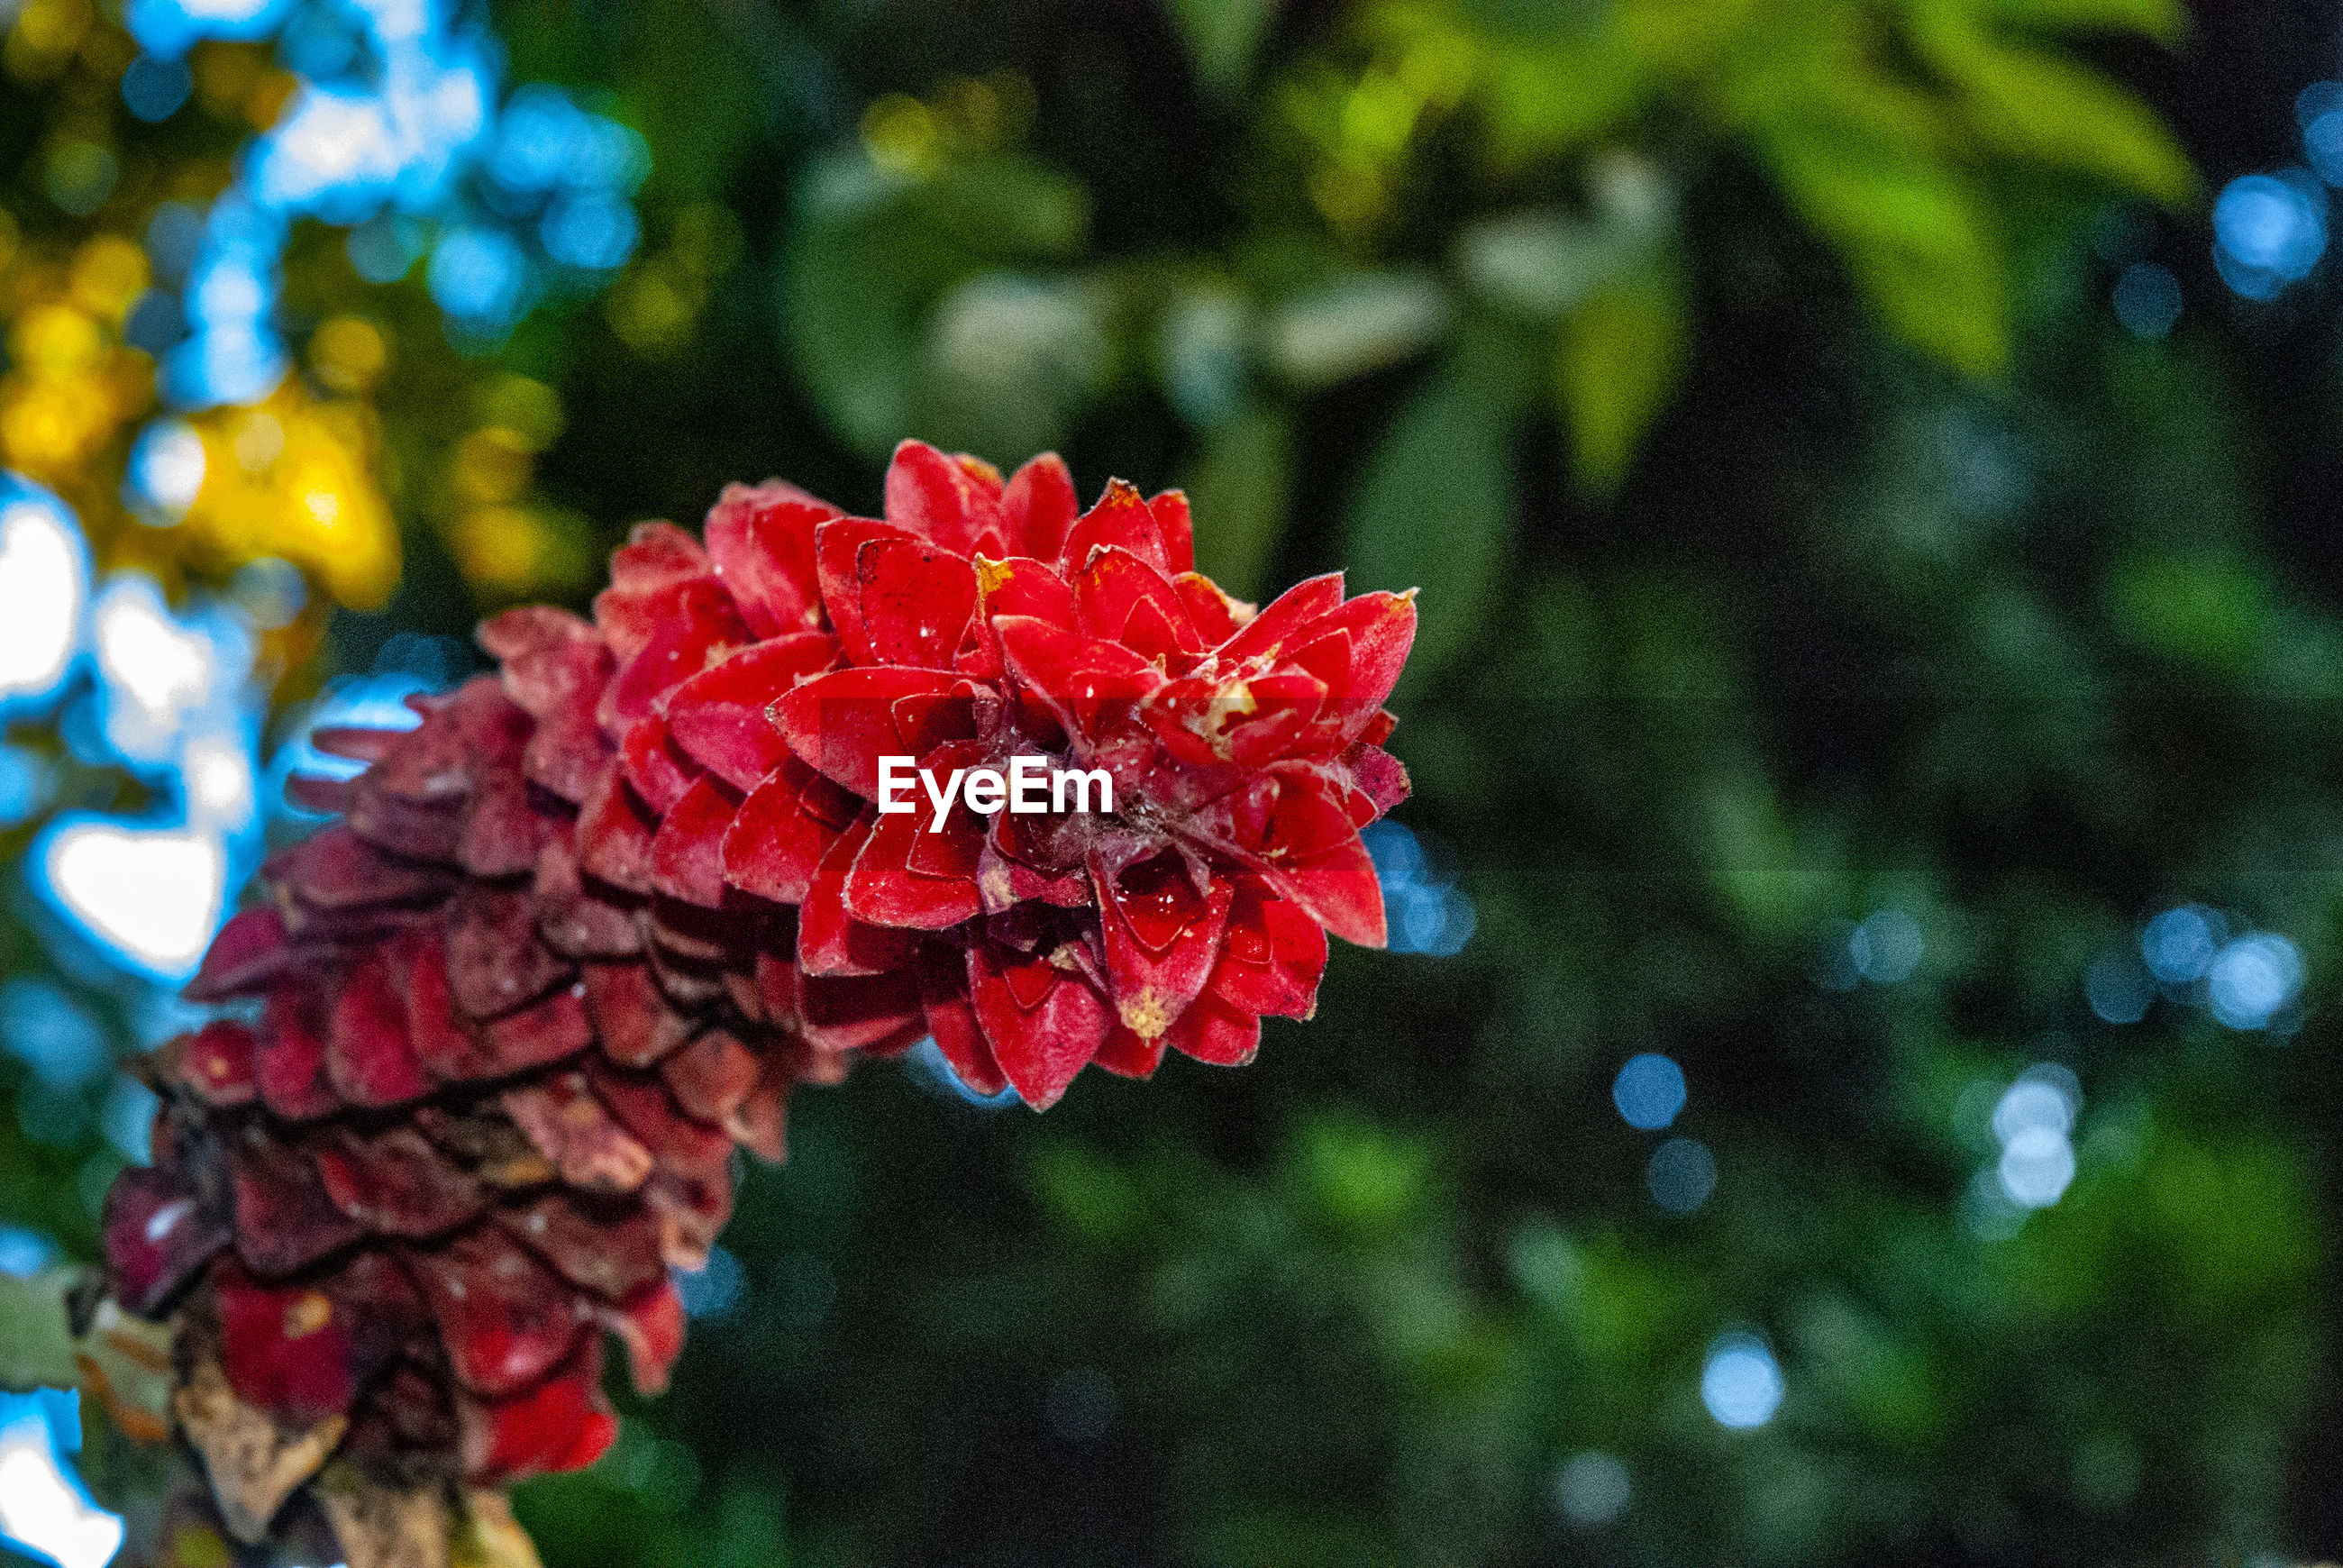 CLOSE-UP OF RED FLOWERING PLANT AGAINST TREES